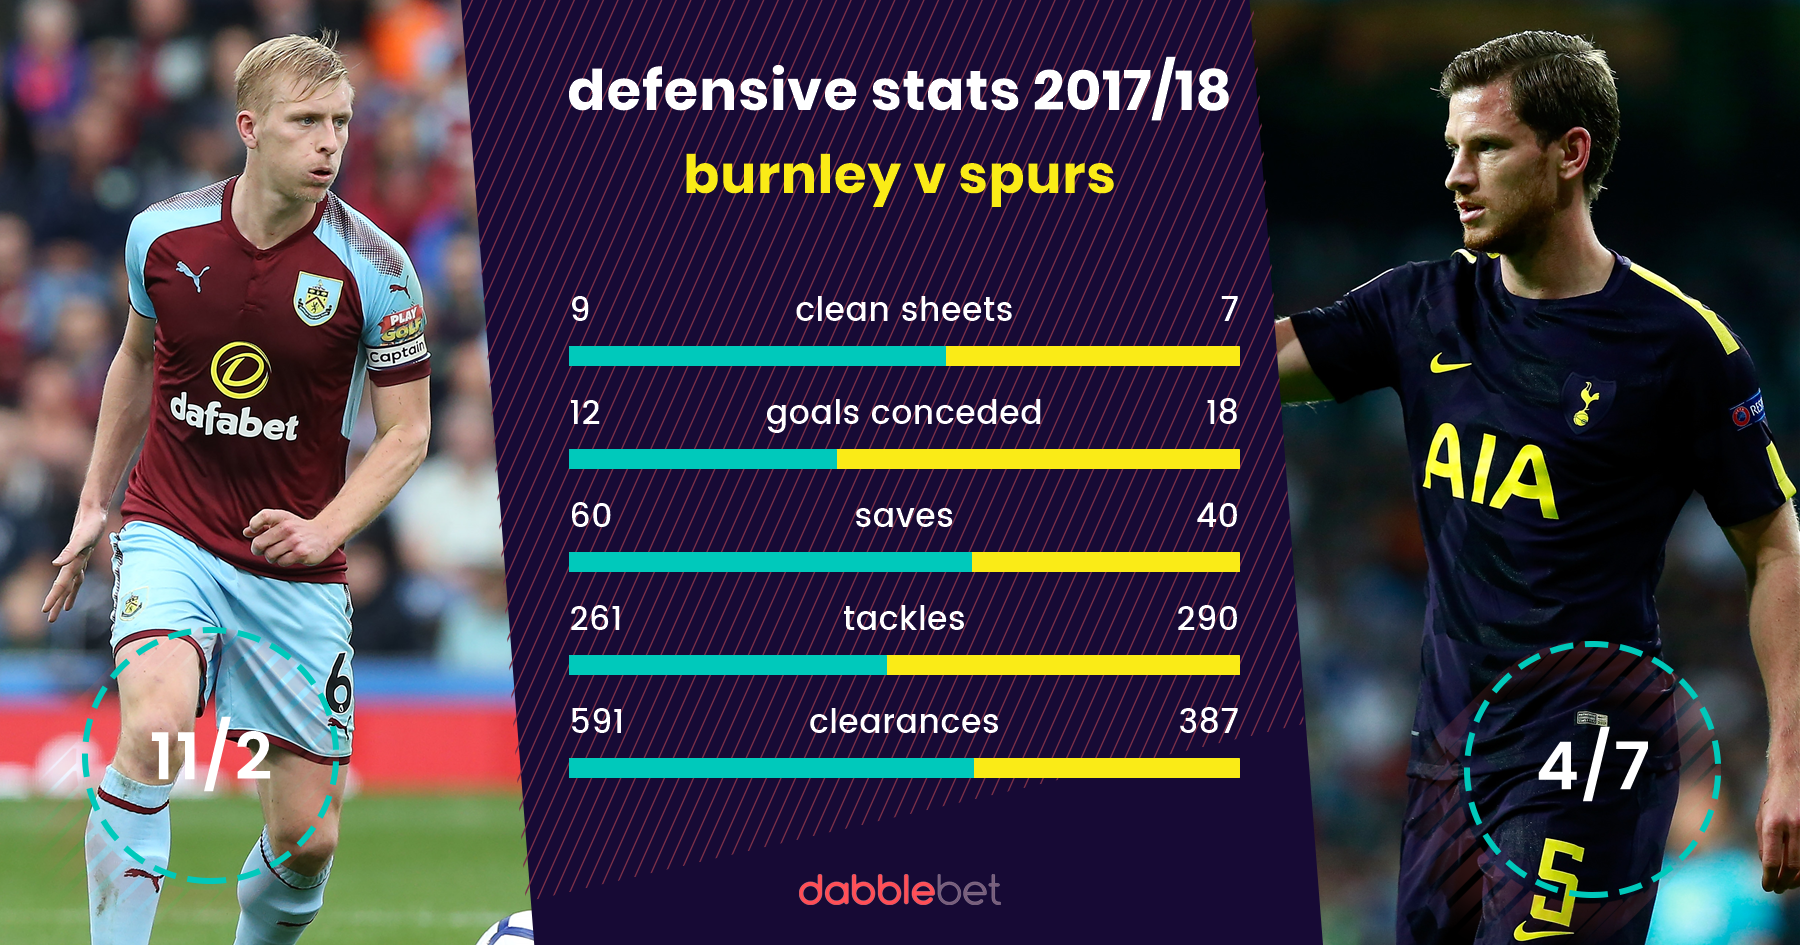 Burnley Spurs graphic